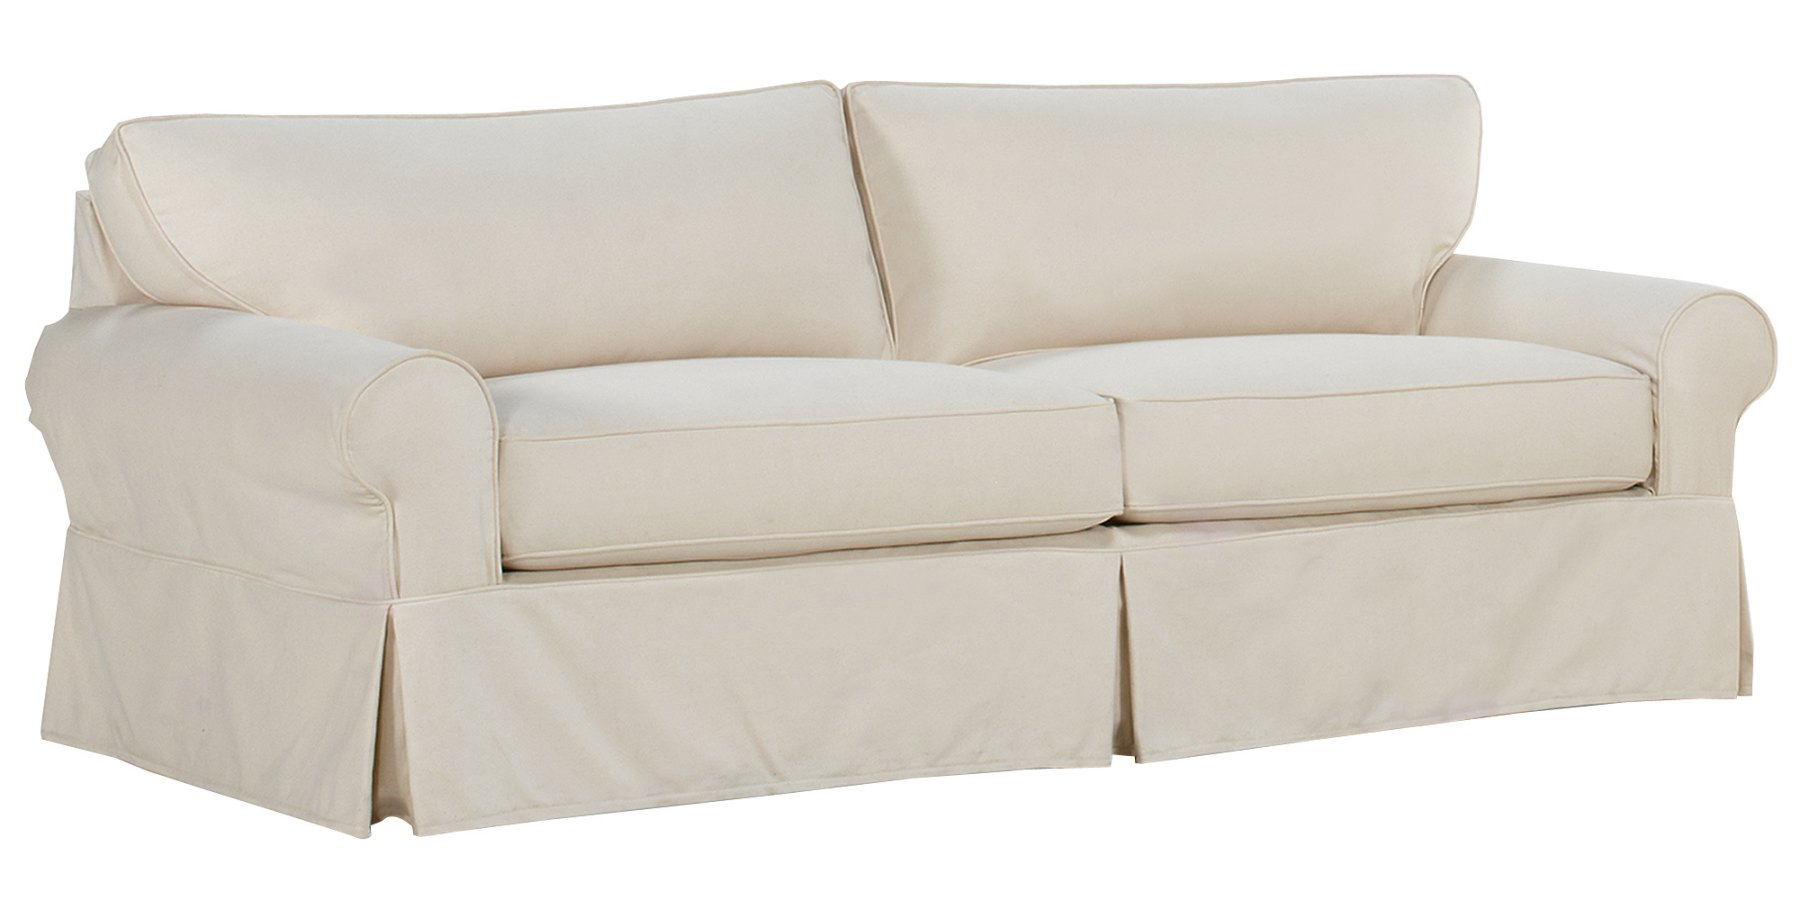 Oversized Sofas And Sofa Slipcover Furniture Online : charleston grand scale slipcovered collection 1 from www.clubfurniture.com size 1800 x 900 jpeg 110kB